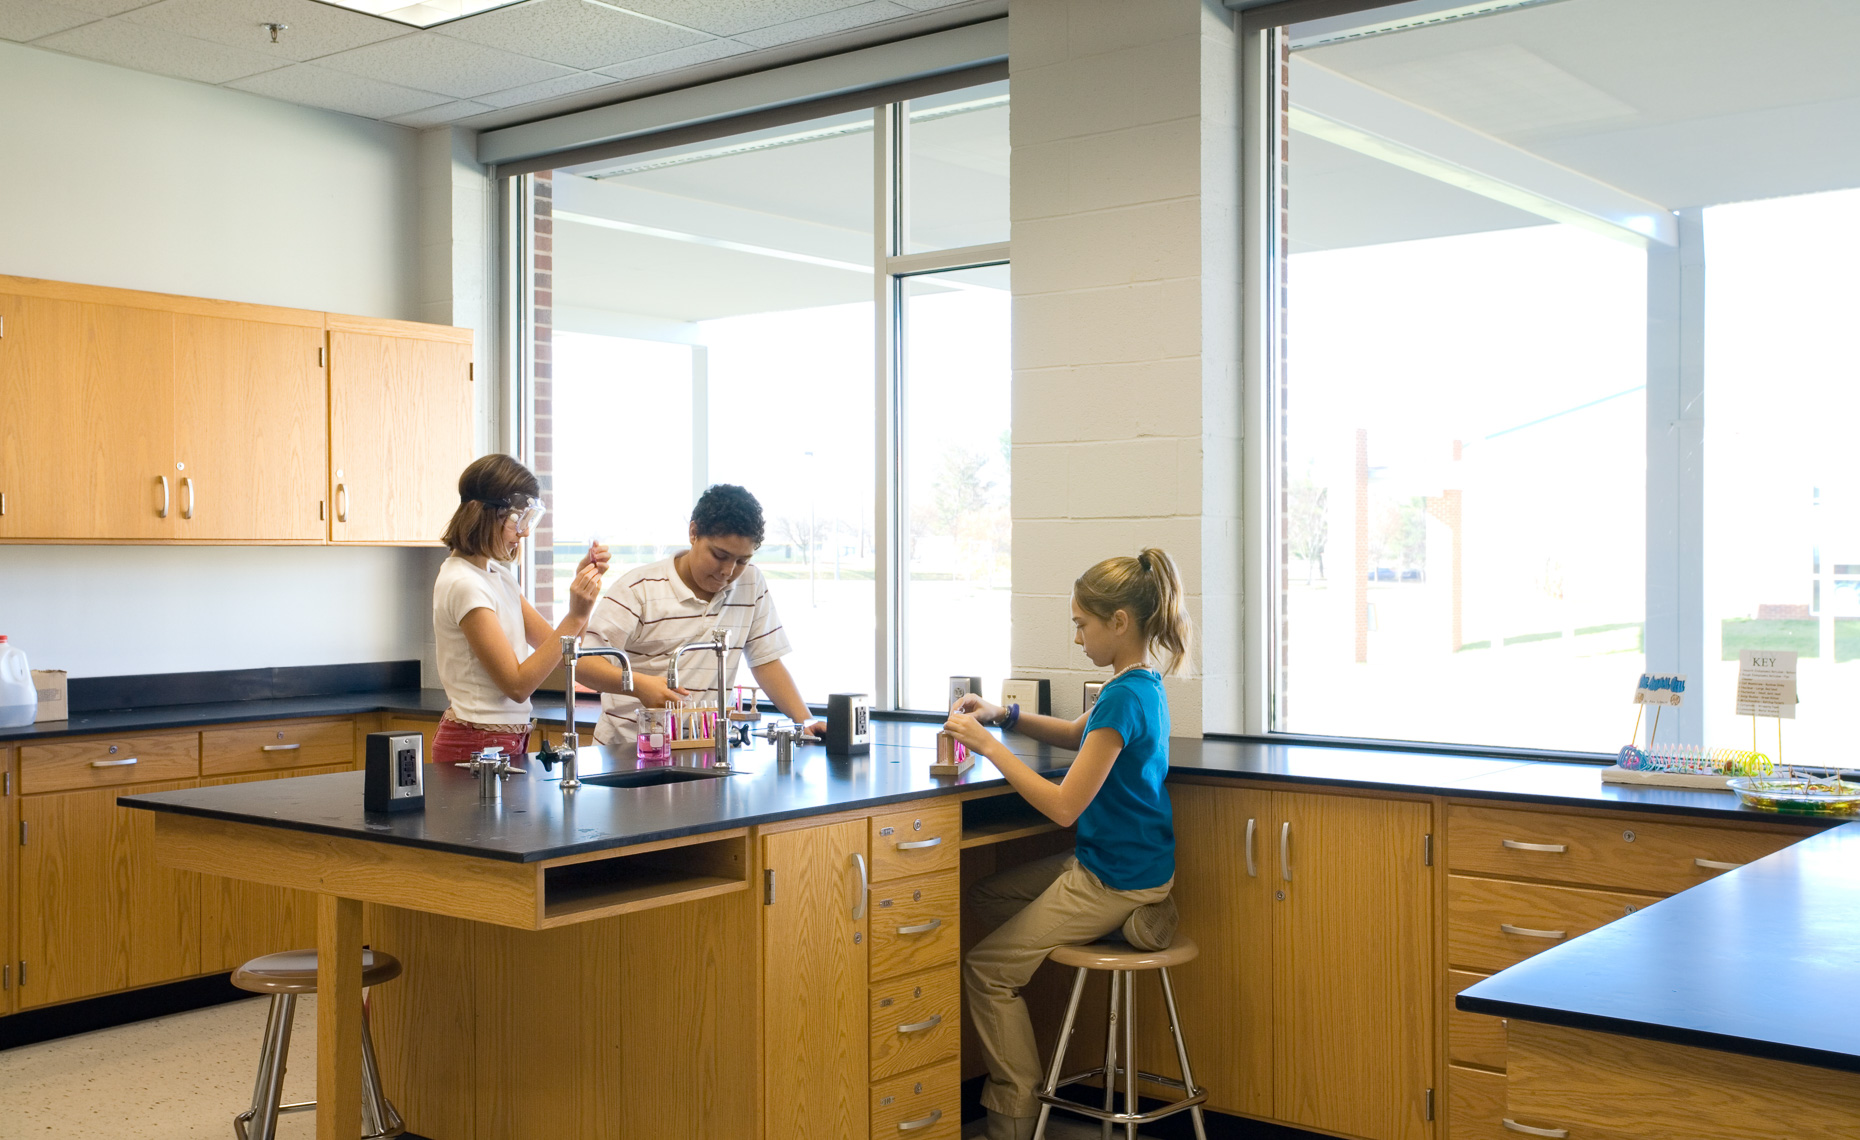 Virginia Hamrick Photography - Middle School Science Classroom